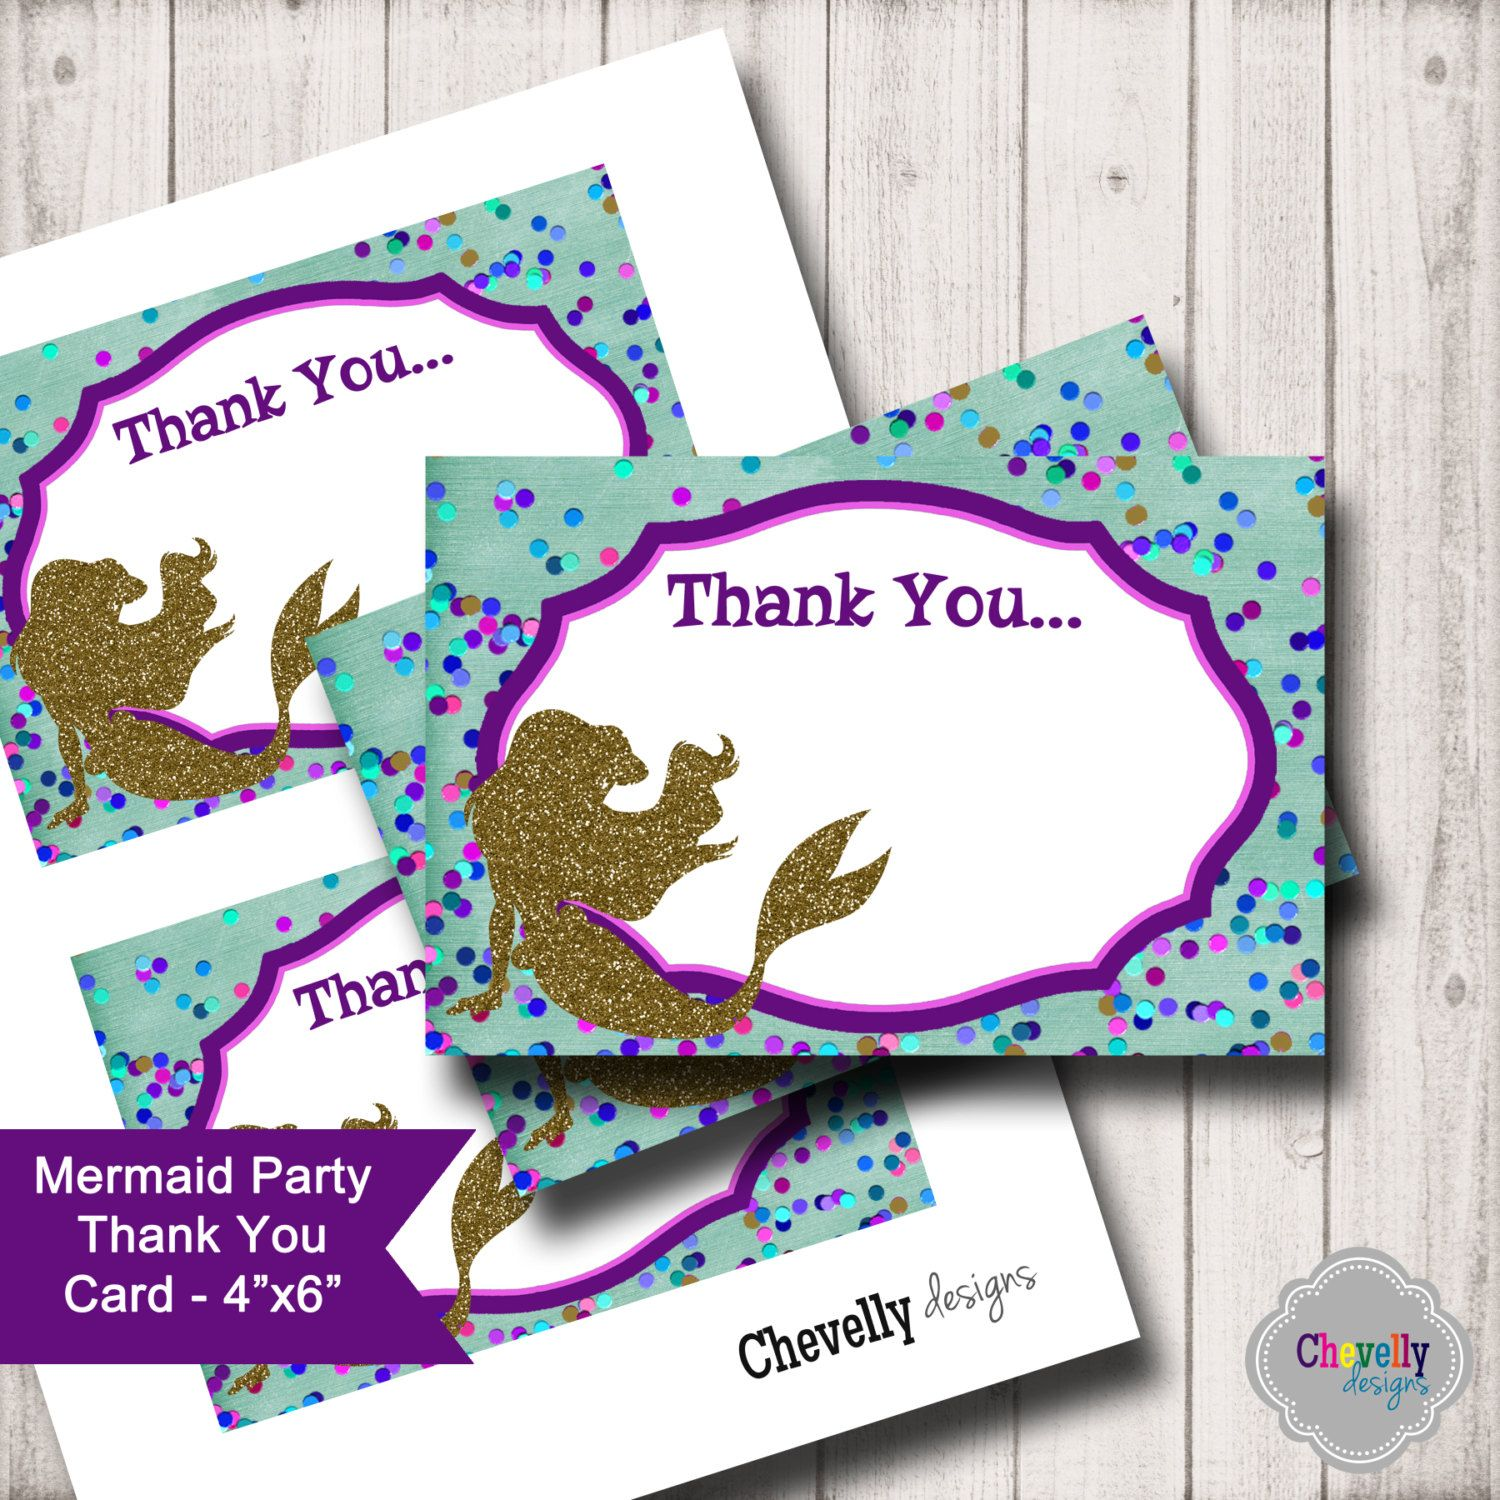 Mermaid Printable 4x6 Flat Thank You Card - TY006 by ChevellyDesigns on Etsy